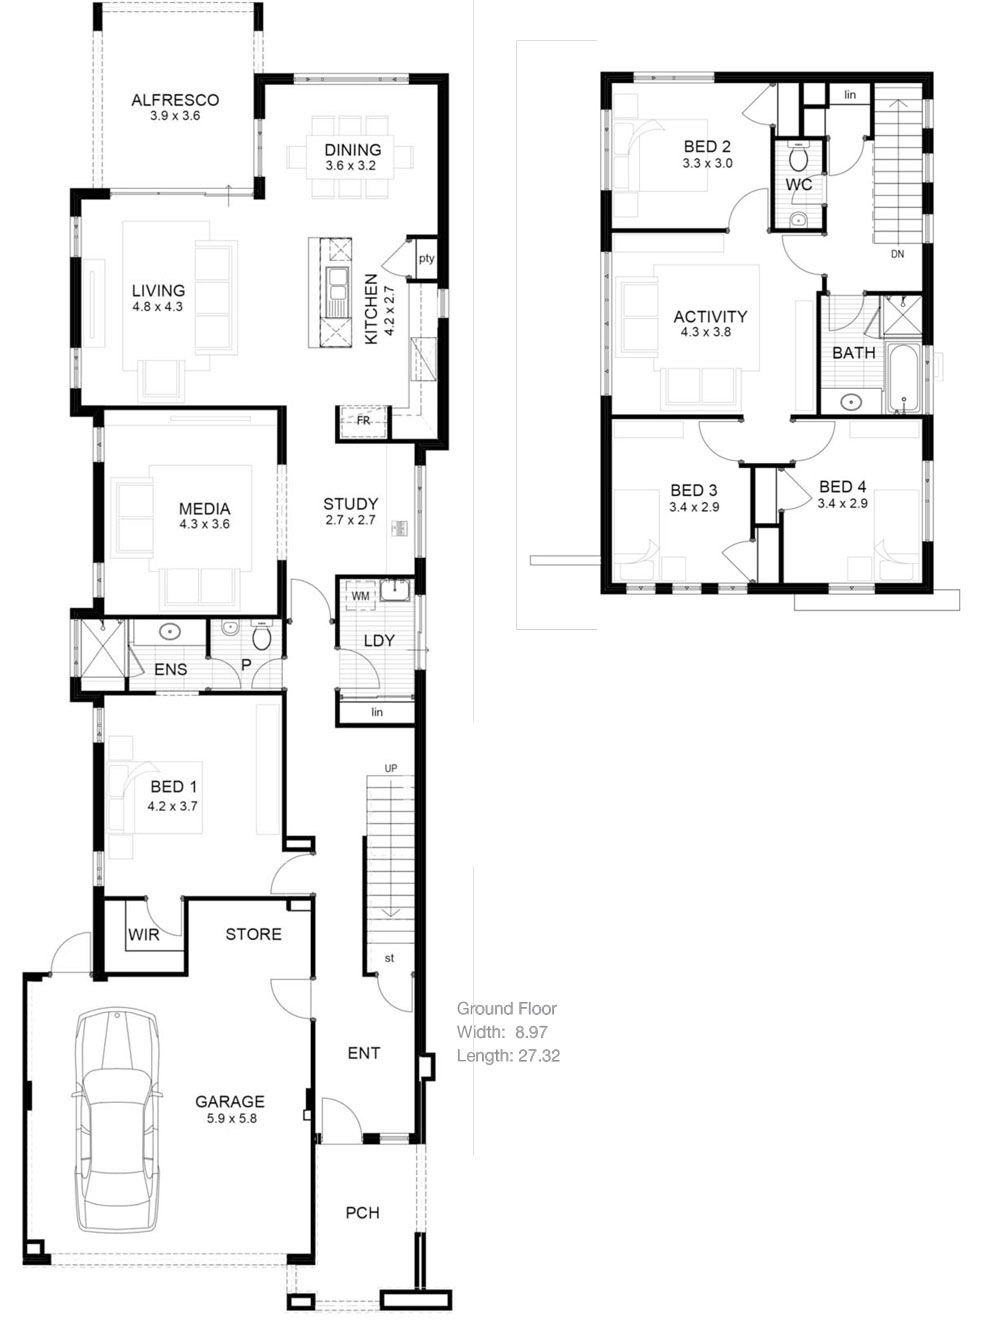 House Plans For Narrow Lots house for a narrow lot plan hwbdo76608 Lot Narrow Plan House Designs Craftsman Narrow Lot House Plans